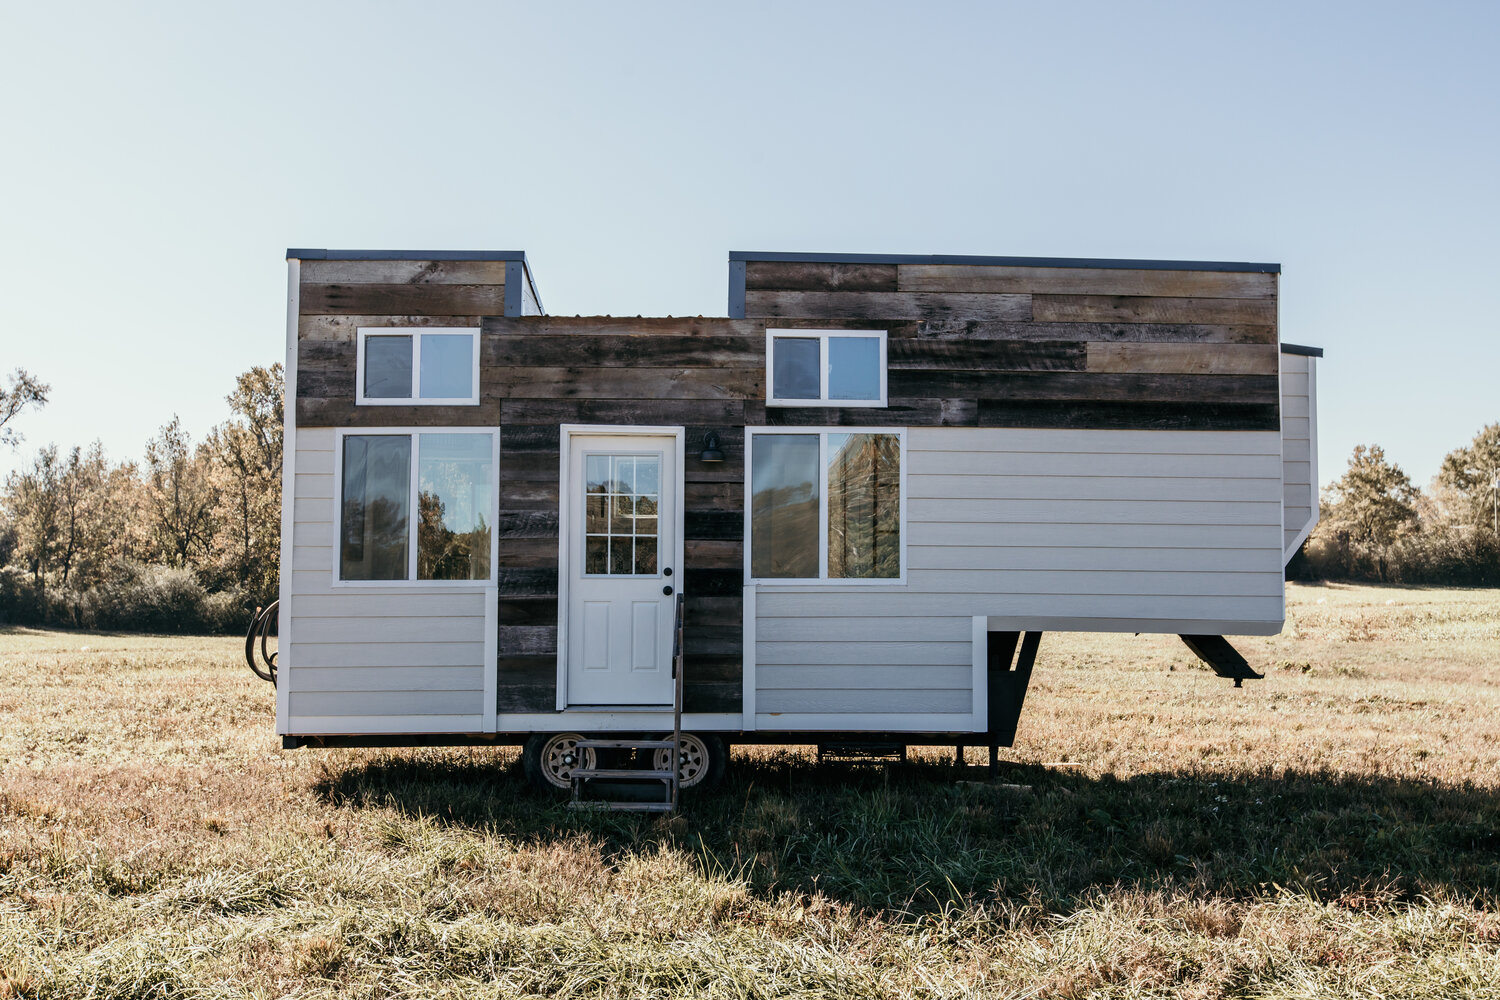 Tiny House Giveaway on laid out mobile homes, home improvement mobile homes, hgtv mobile homes, neat mobile homes, for rent mobile homes,